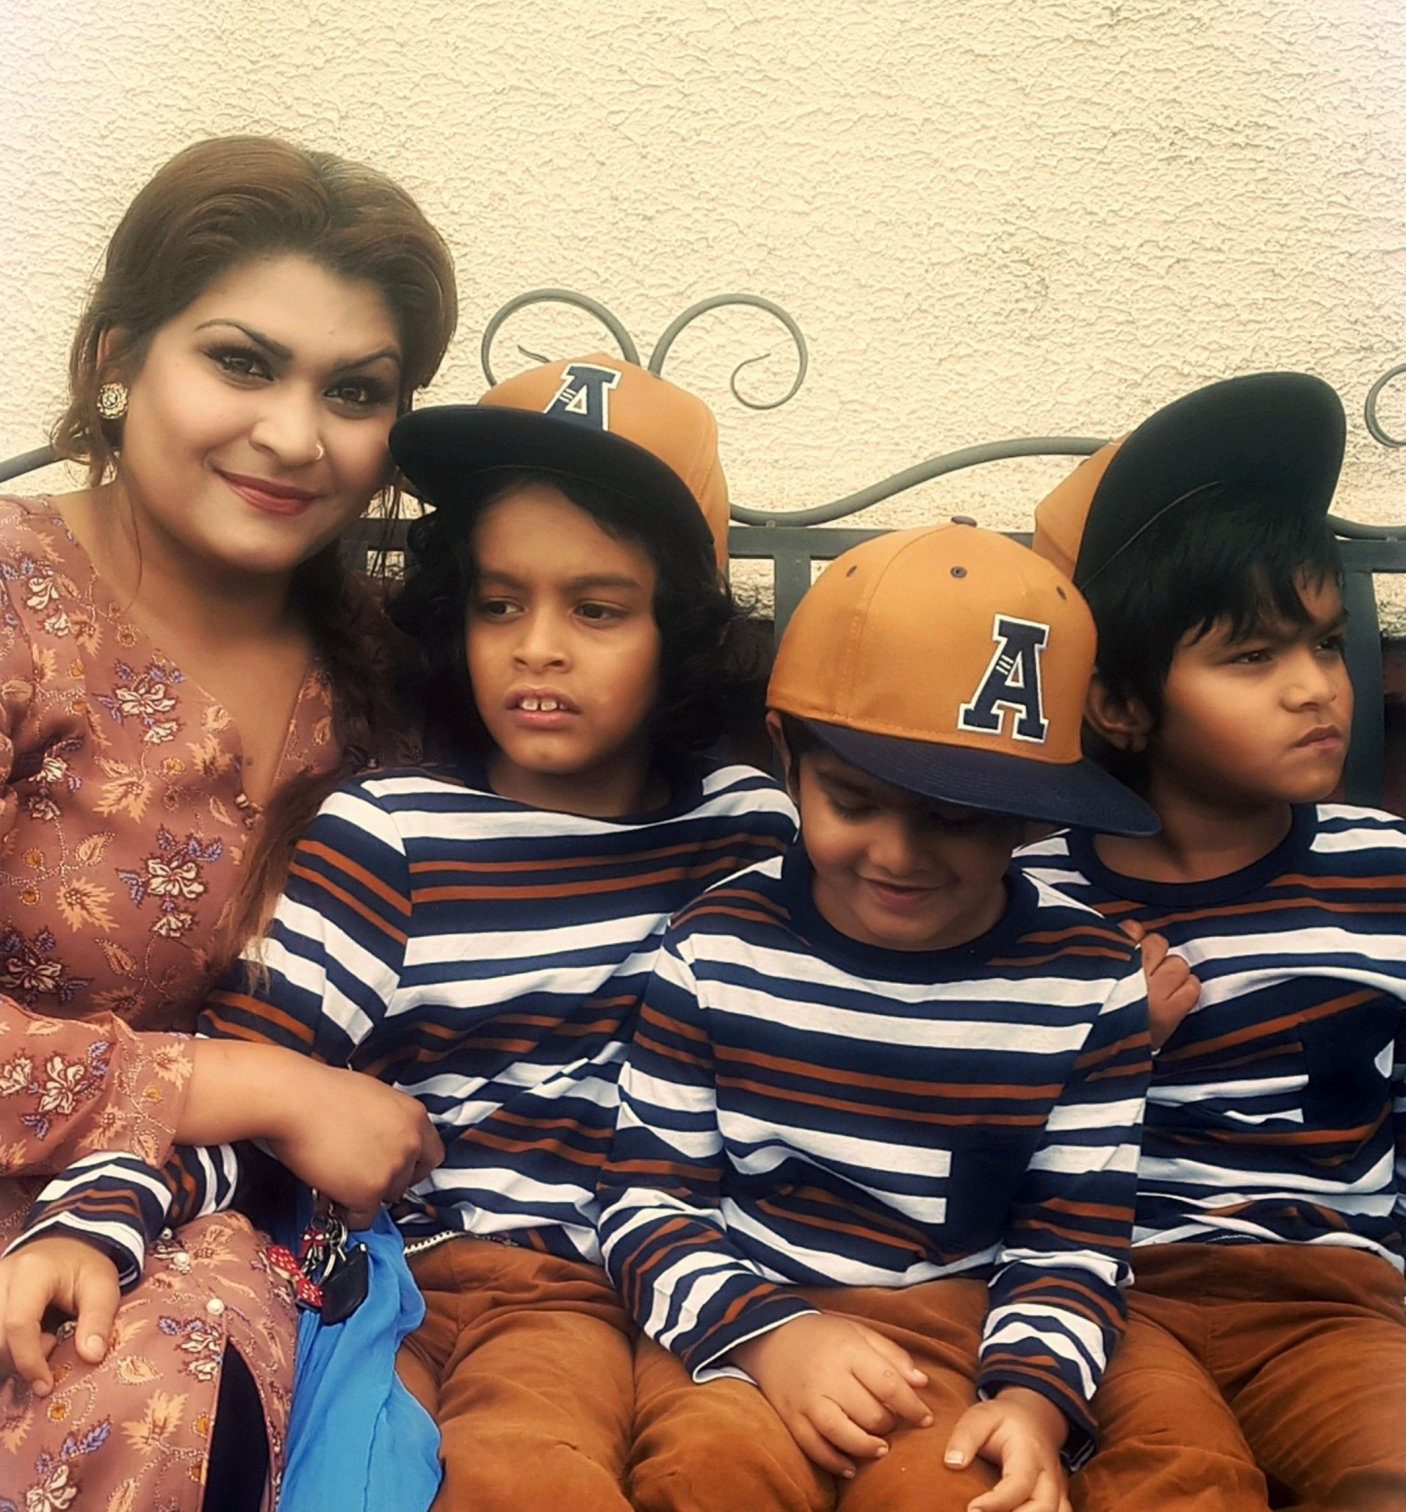 Pic by Caters News - (Pictured: Laksuma Begum with her sons Caius, eight, Kyan, seven, and Sammy, five ) - A desperate single mum has shared shocking videos revealing her daily struggle raising three severely autistic kids and claims she gets no help from the authorities. High school supply teacher Laksuma Begum, 32, from Somerton, Newport, Wales, spends her time cleaning, cooking and taking care of sons non-verbal sons Caius, eight, Kyan, seven, and Sammy, five. Shocking footage shows the boys grabbing Laksumas hair until she cries, tugging at curtains and screaming. The mum claims she has been seeking help from Newport City Council for respite care to help with her angels in disguise since 2015 and has even called the police in her desperation but has received only two hours of support a week. SEE CATERS COPY